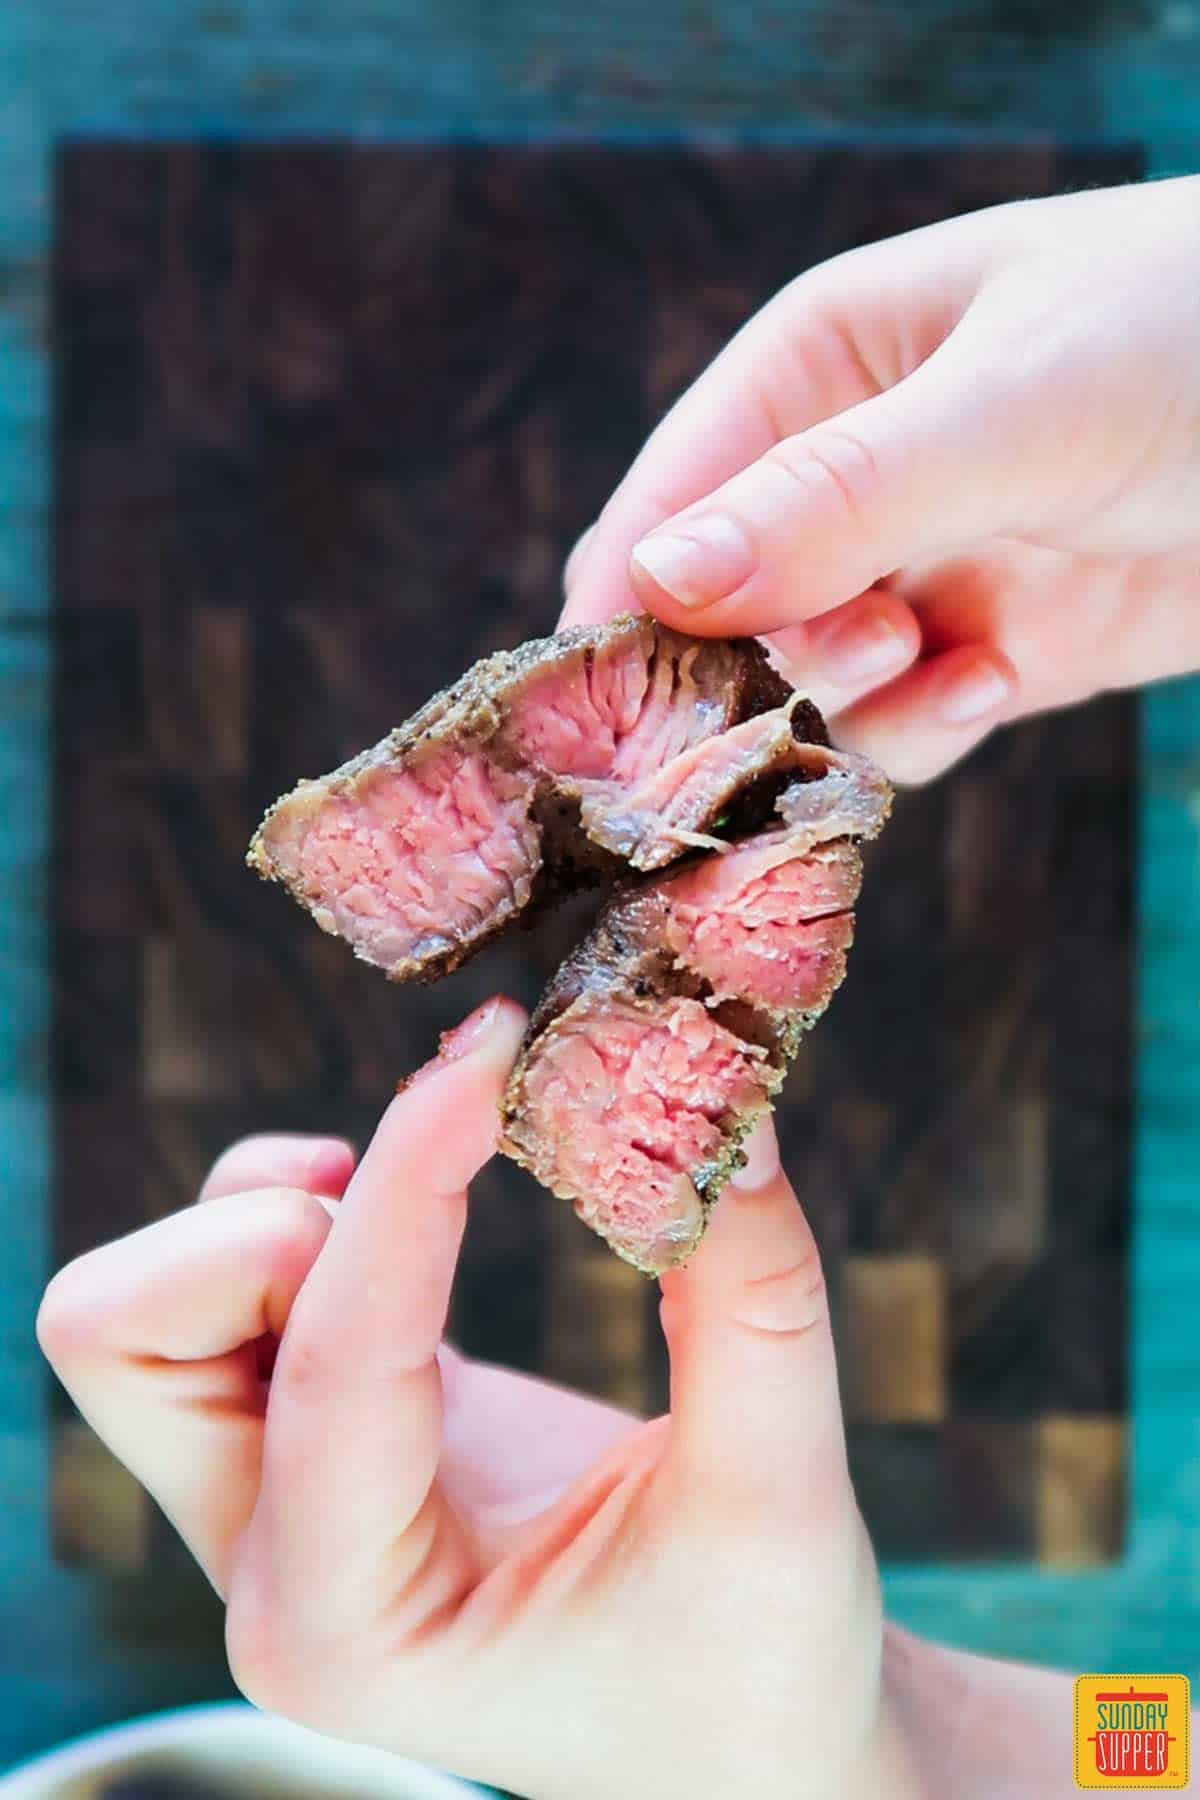 Showing the beautiful pink medium-rare of steak kebabs by splitting a piece with hands